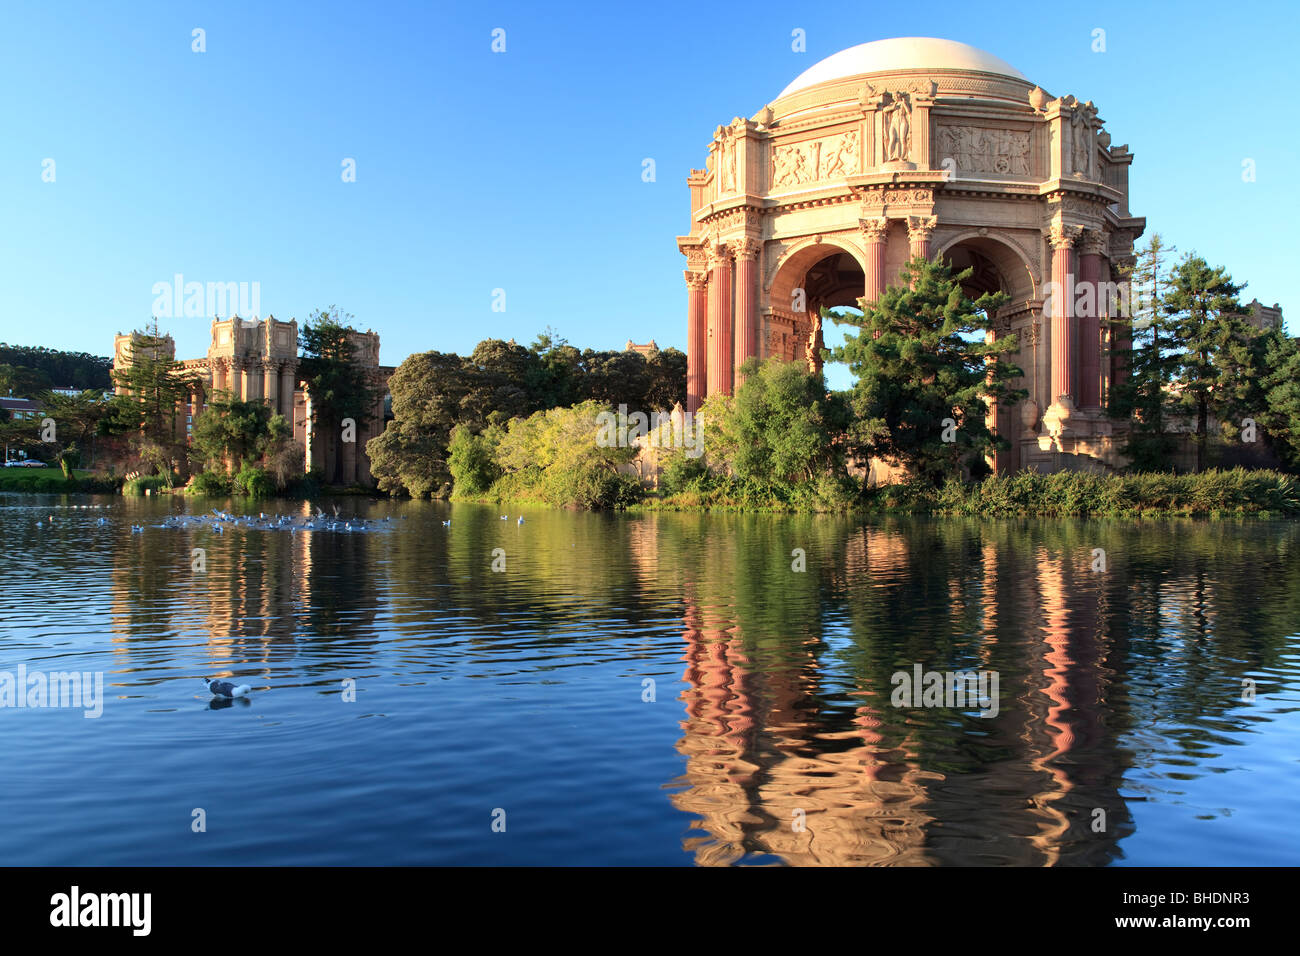 The Palace of Fine Arts , built 1915 for the Panama- Pacific Internation exhibition - Stock Image